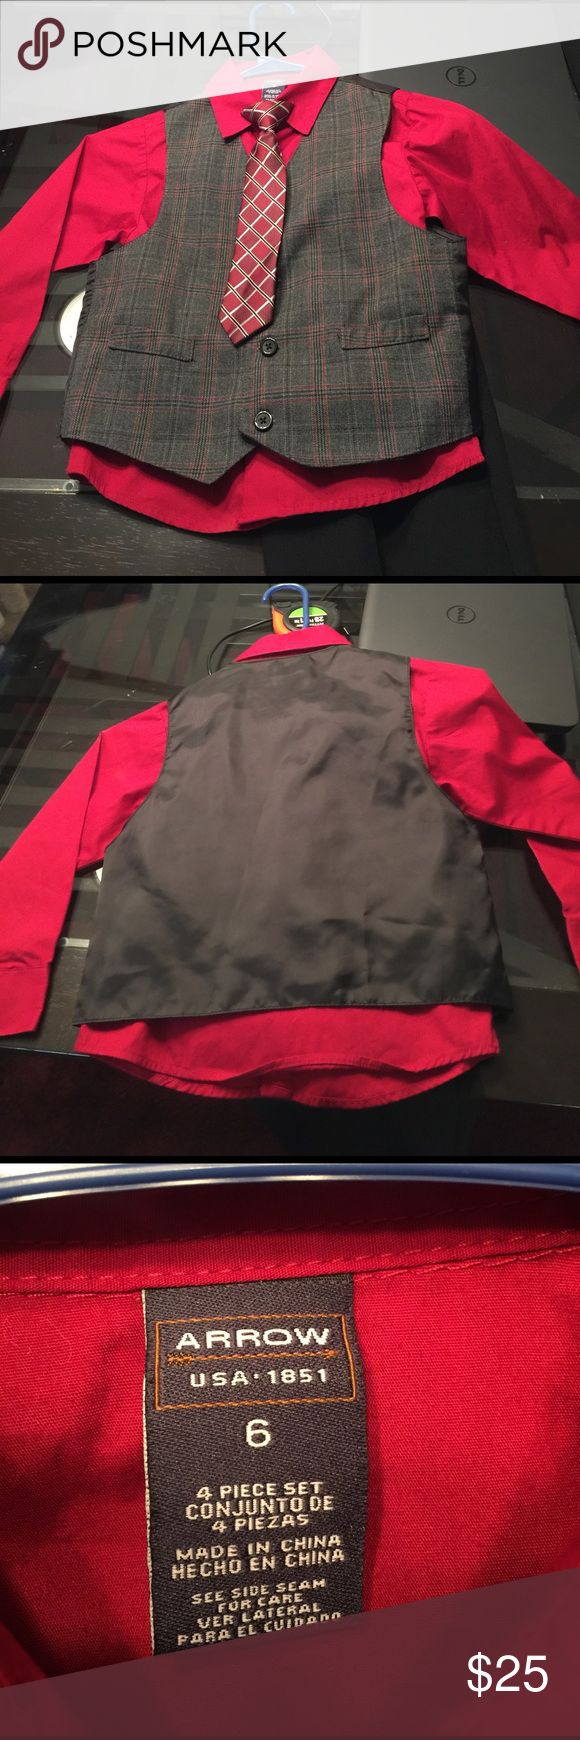 Little Boy 4 Piece Suit NWOT. Clip on tie, deep red Button Up shirt, grey, red & black vest and black Elastic waist band pants. Arrow Matching Sets